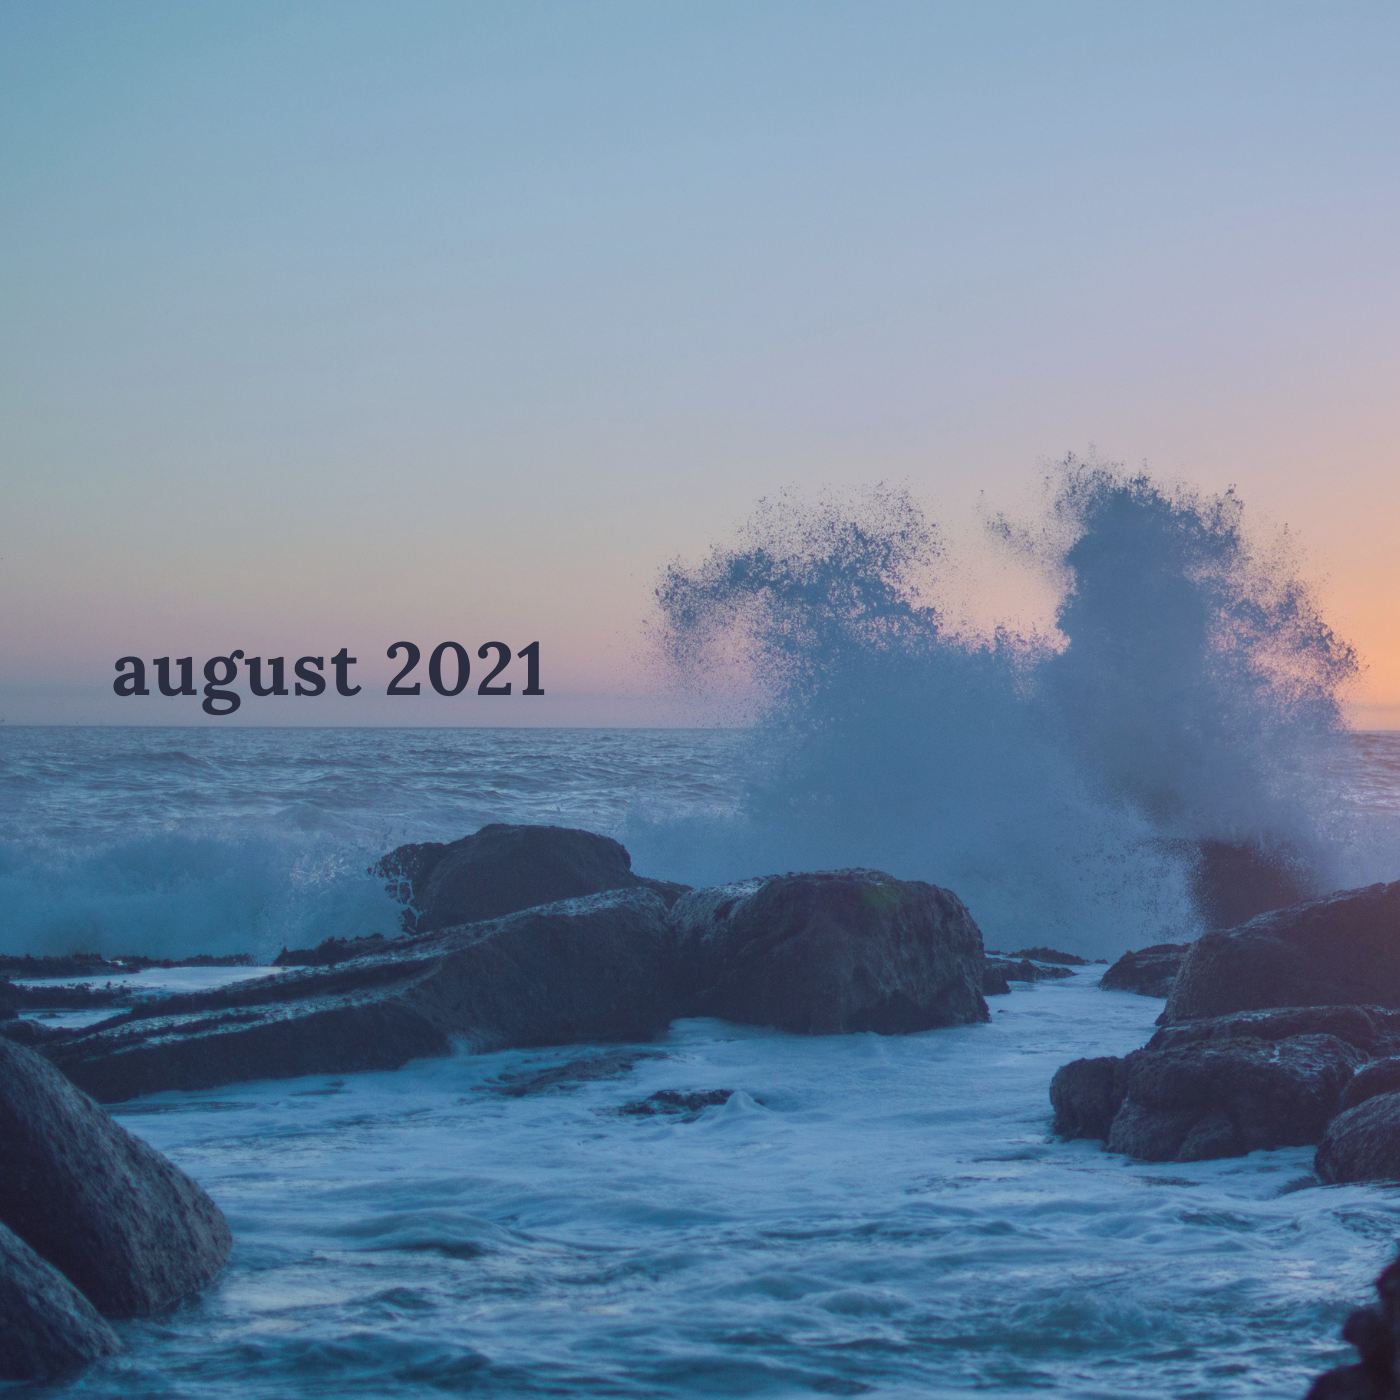 a square image of the tide coming into shore against large rocky outcroppings with a tall spray reading august 2021